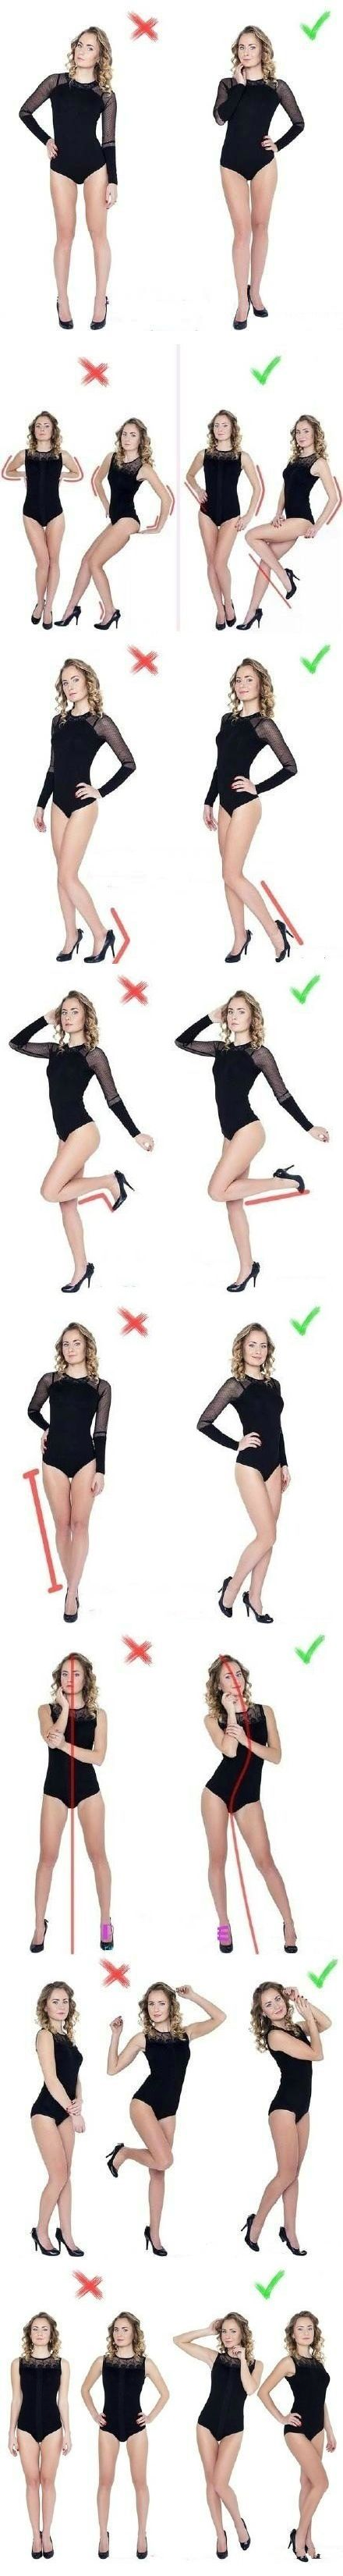 The best images about poses on pinterest zodiac signs zodiac